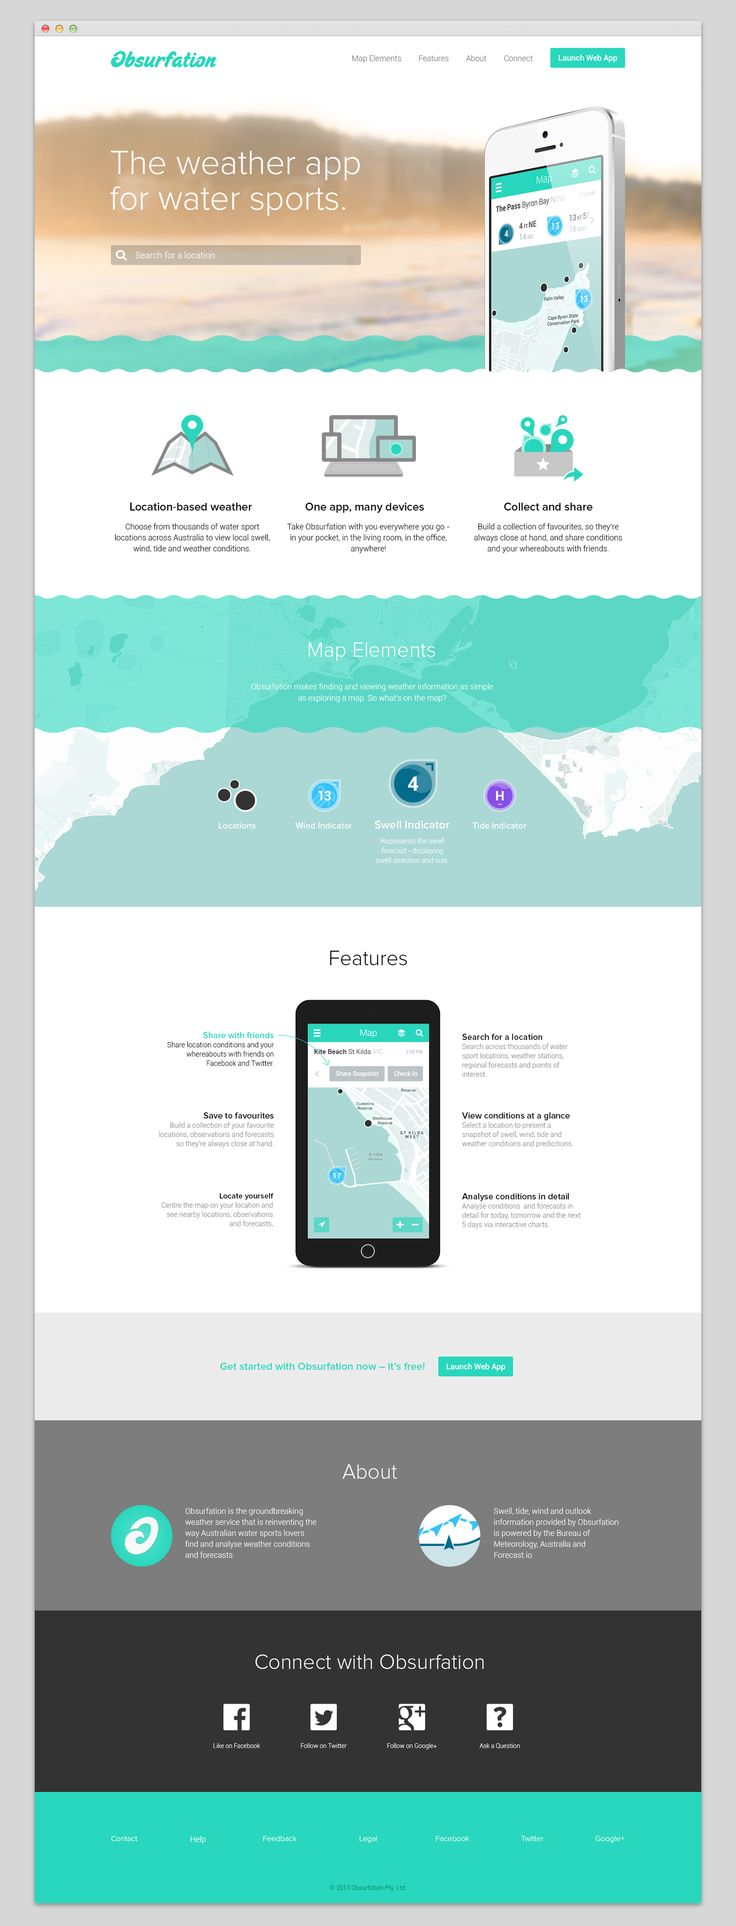 Obsurfation Website by Pennant | Branding and Design. www.studiopennant.com